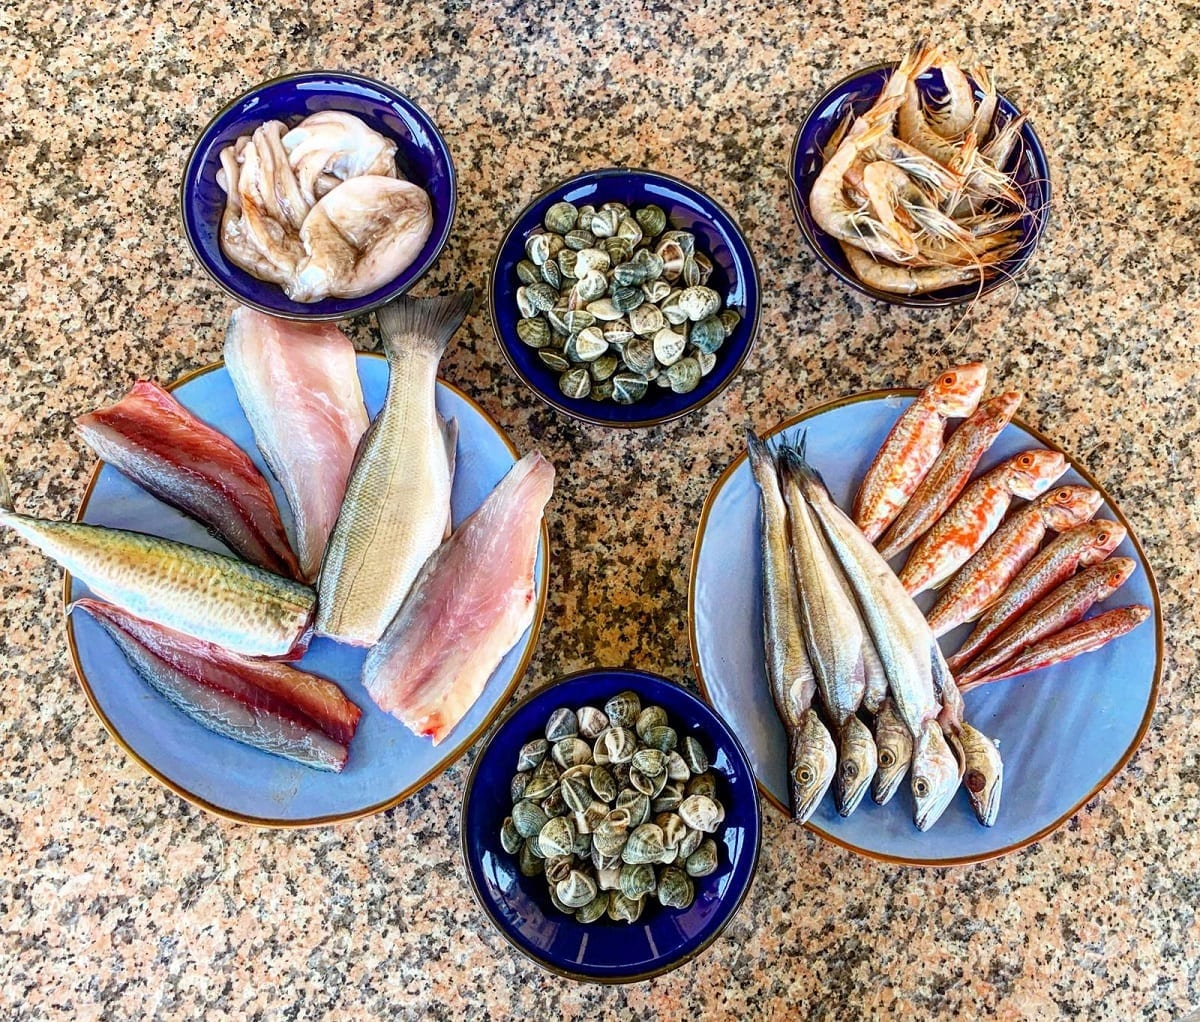 Dol Fish in Rome: delivery service operated by Dol brings home fish from the Lazio coast